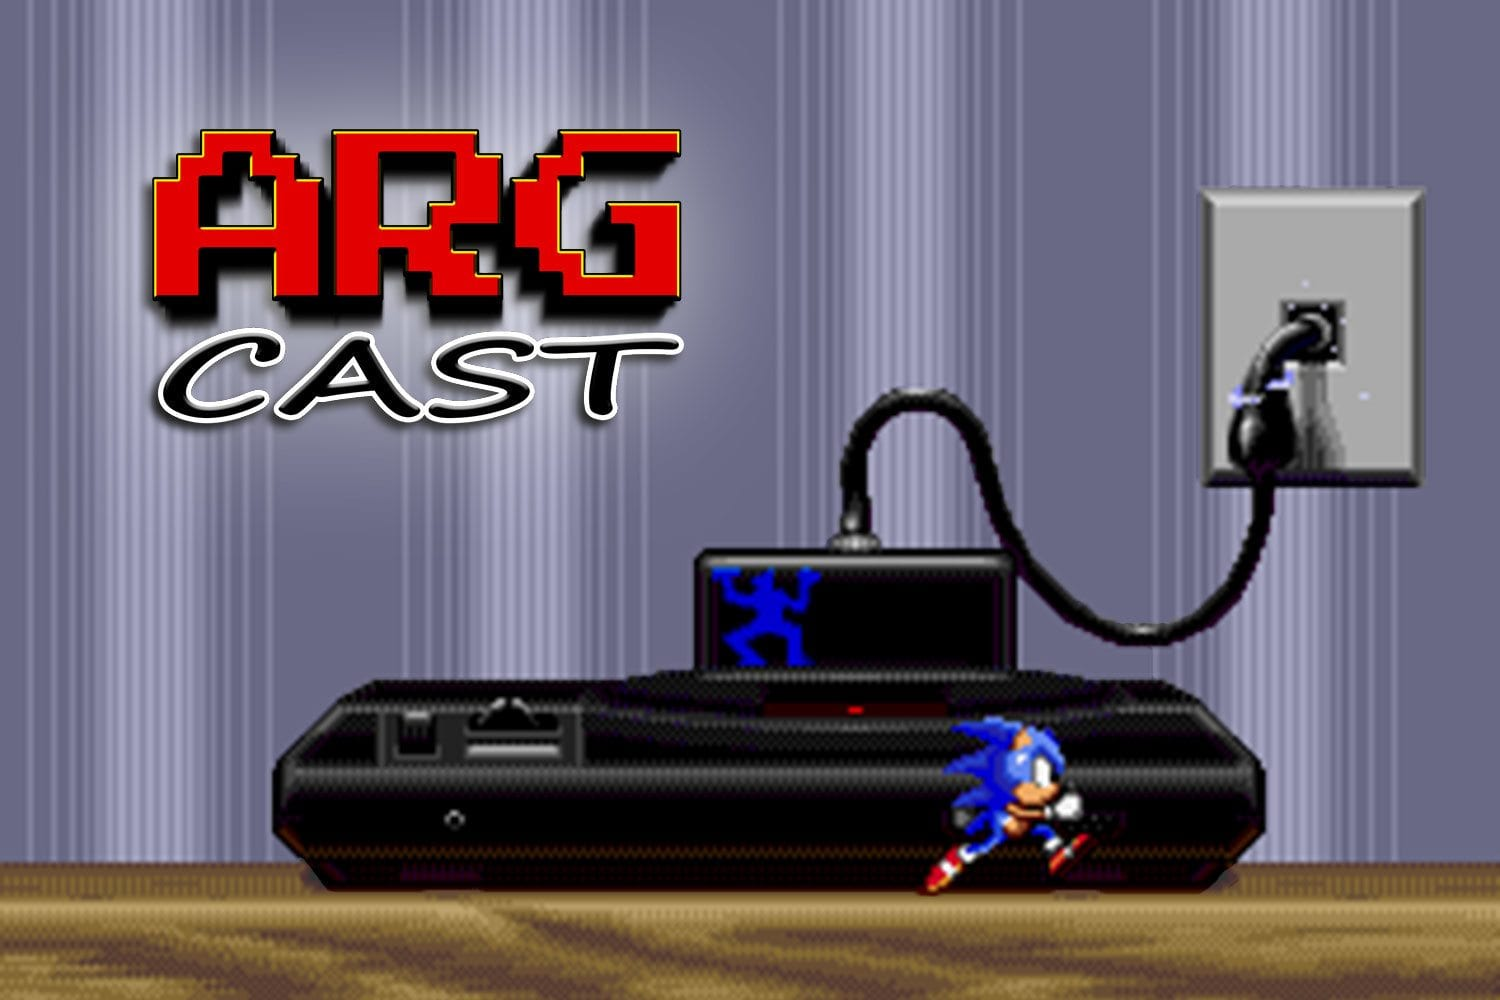 ARGcast #69: Tuning into the Sega Channel with Rochelle Hinds